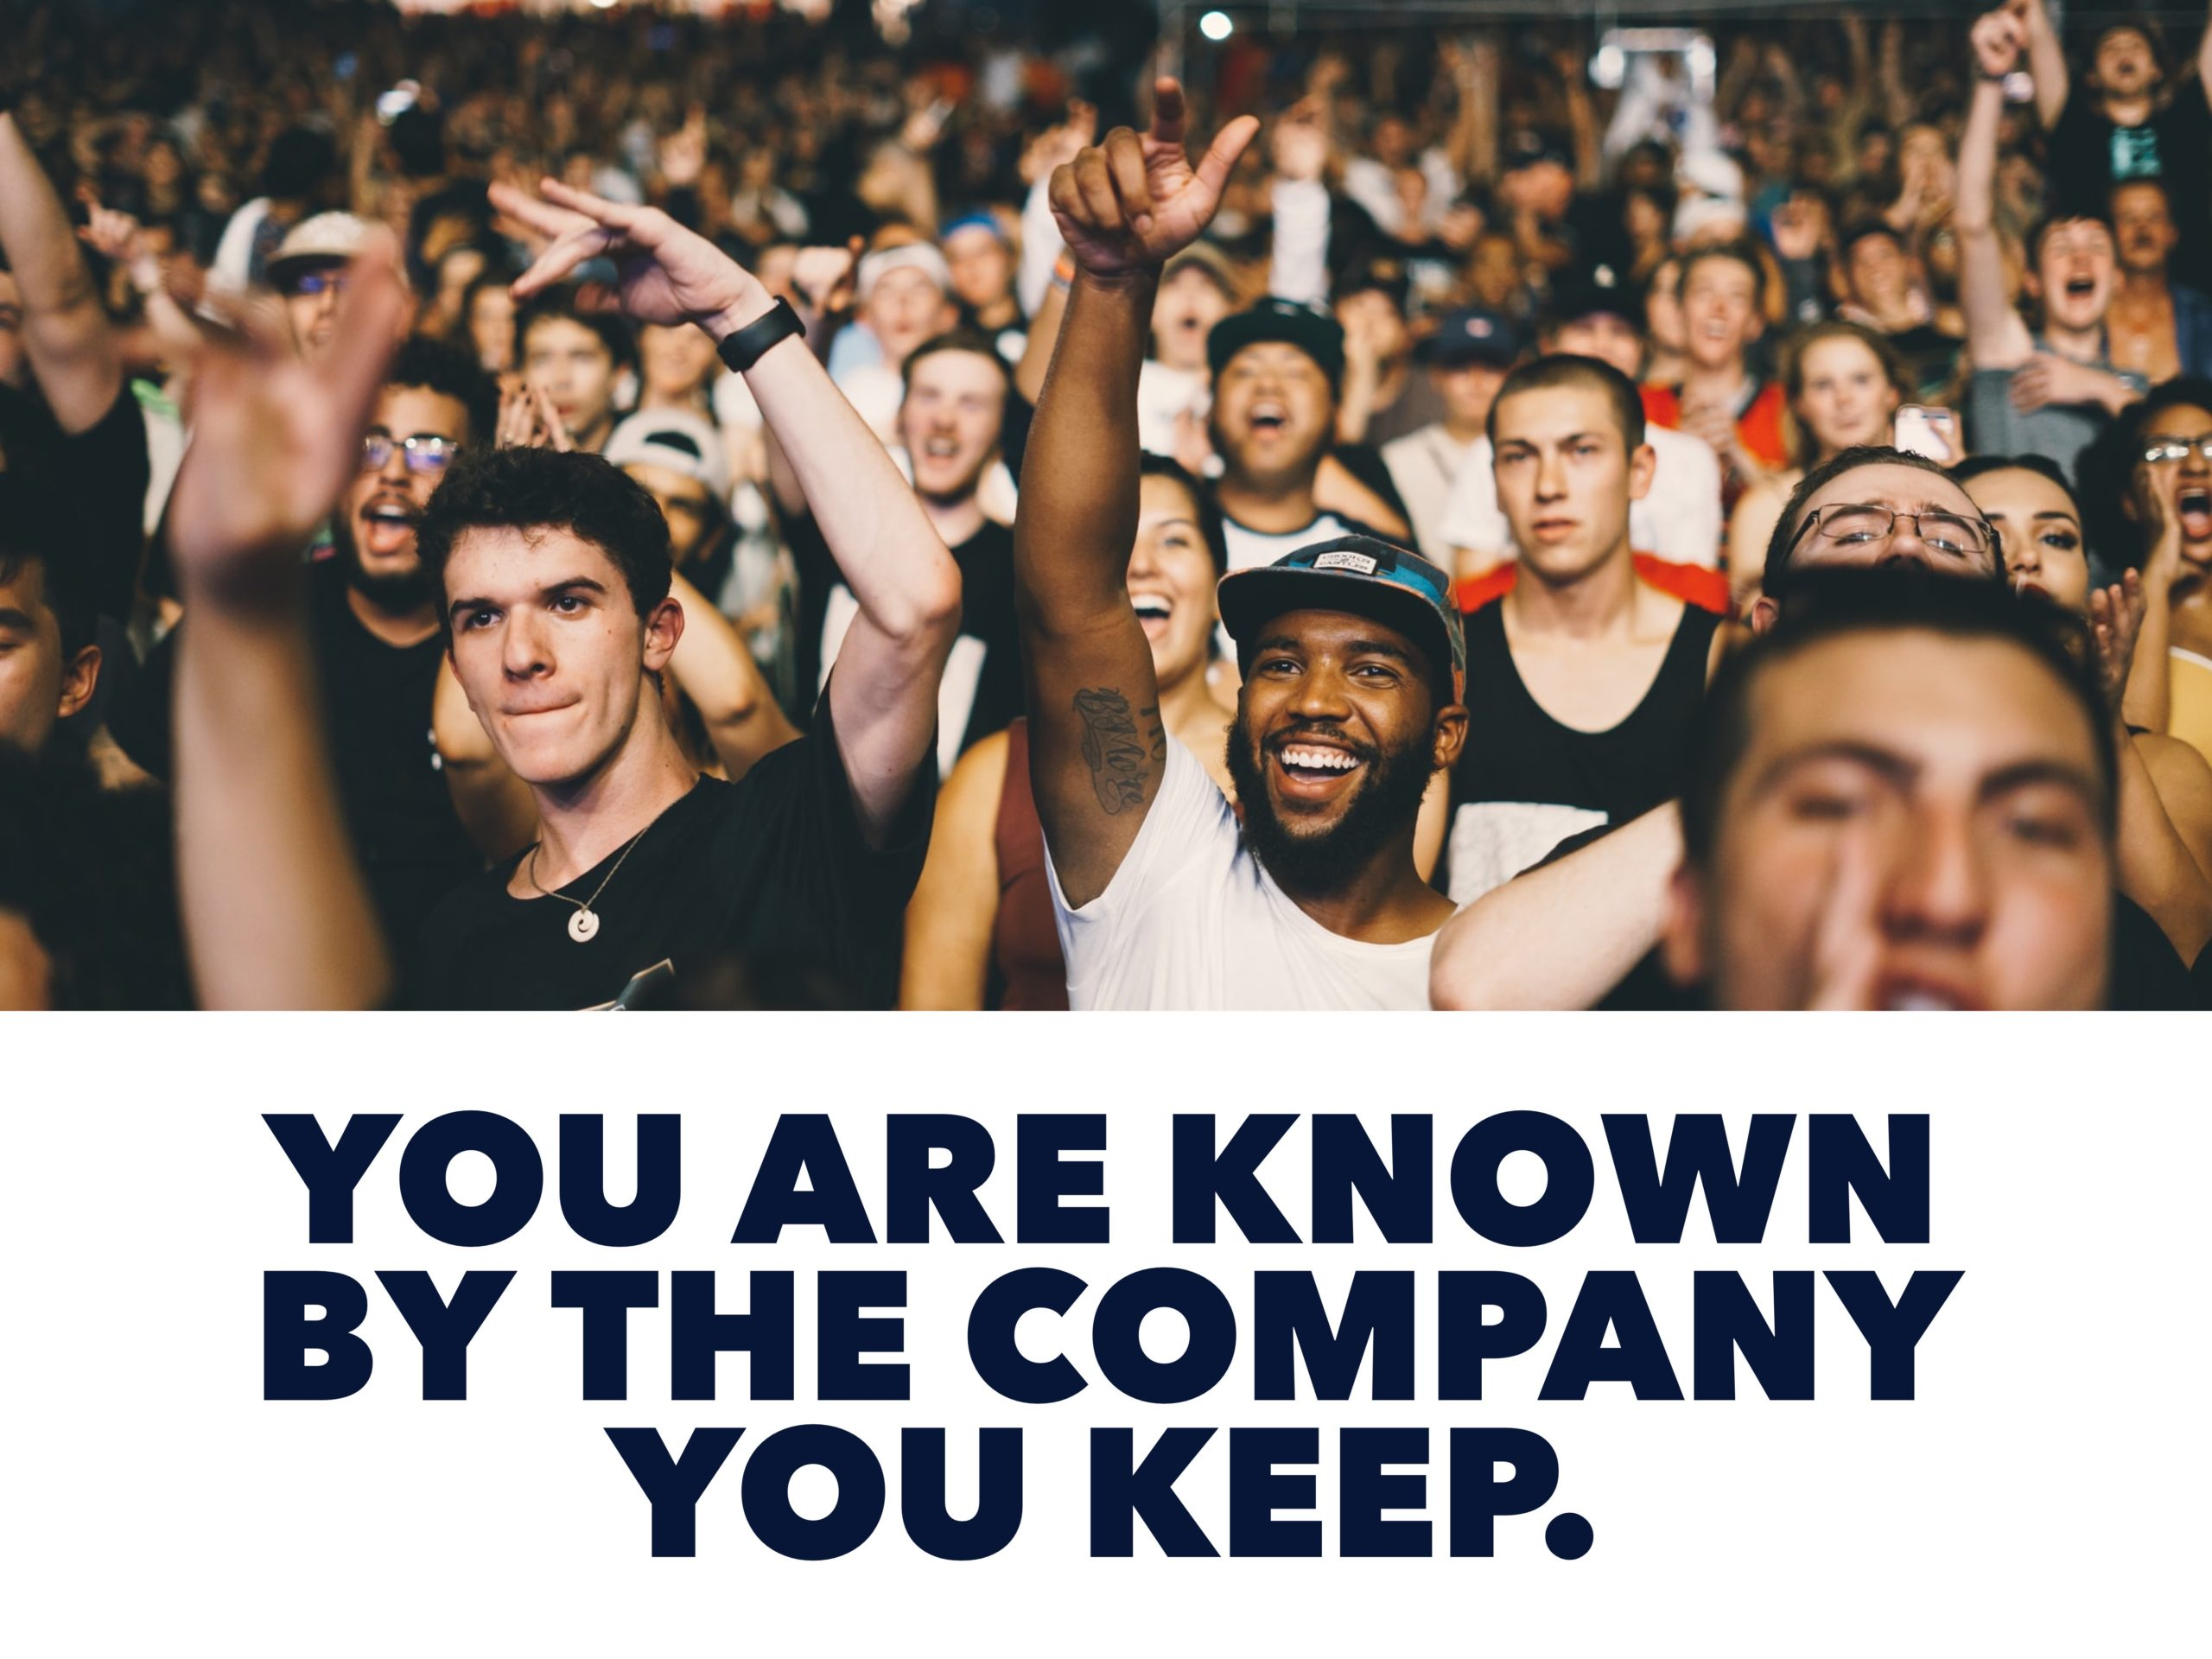 You Are Known By The Company You Keep.